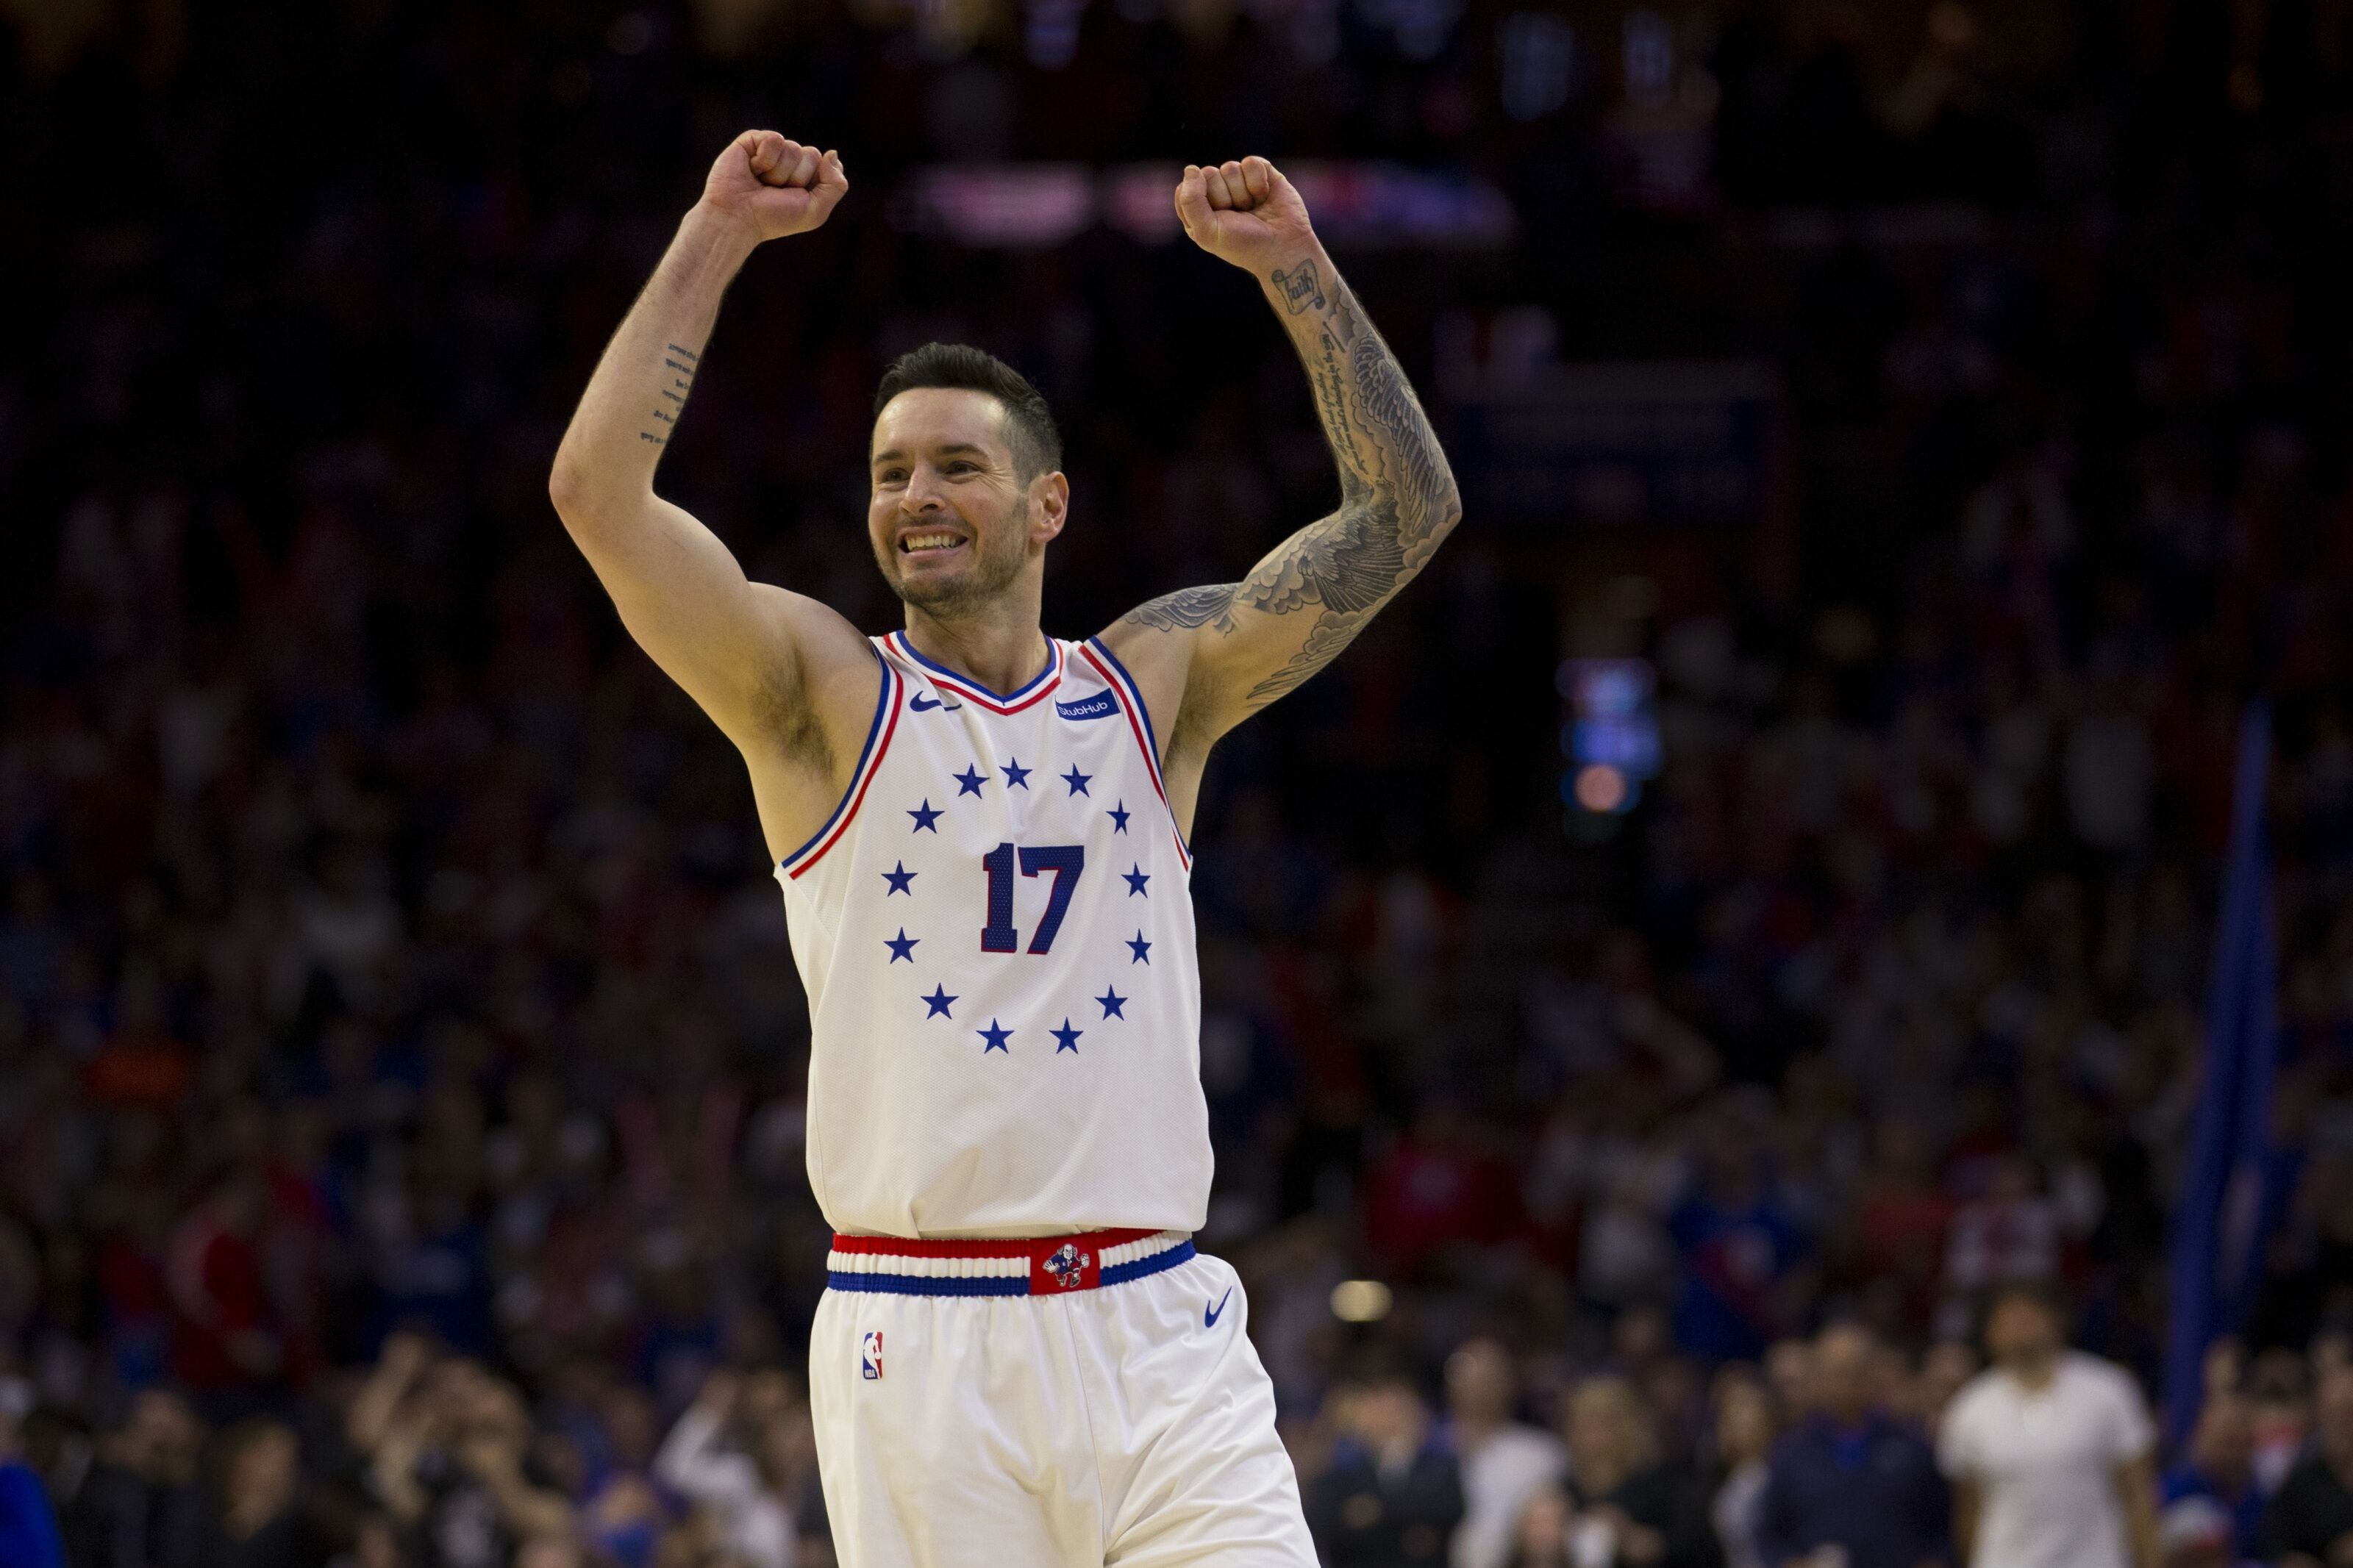 New Orleans Pelicans: Don't be shocked if J.J. Redick is used as trade bait